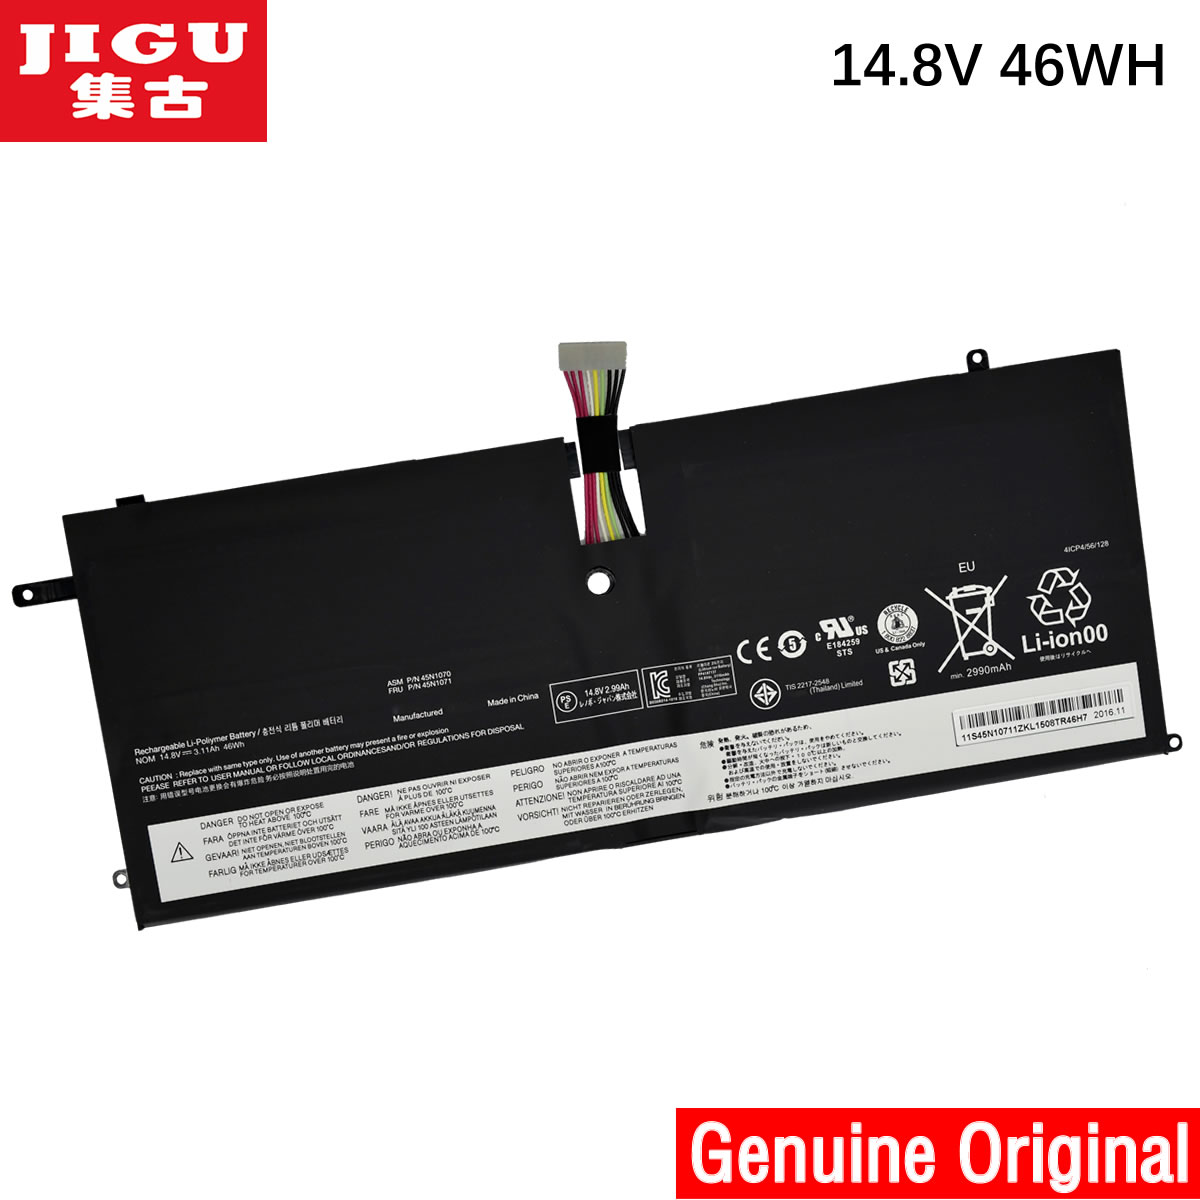 JIGU 45N1070 45N1071 4ICP4/51/95 Original laptop Battery For Lenovo ThinkPad New X1 Carbon X1C 14.8V 46WH new original for lenovo thinkpad yoga 260 bottom base cover lower case black 00ht414 01ax900